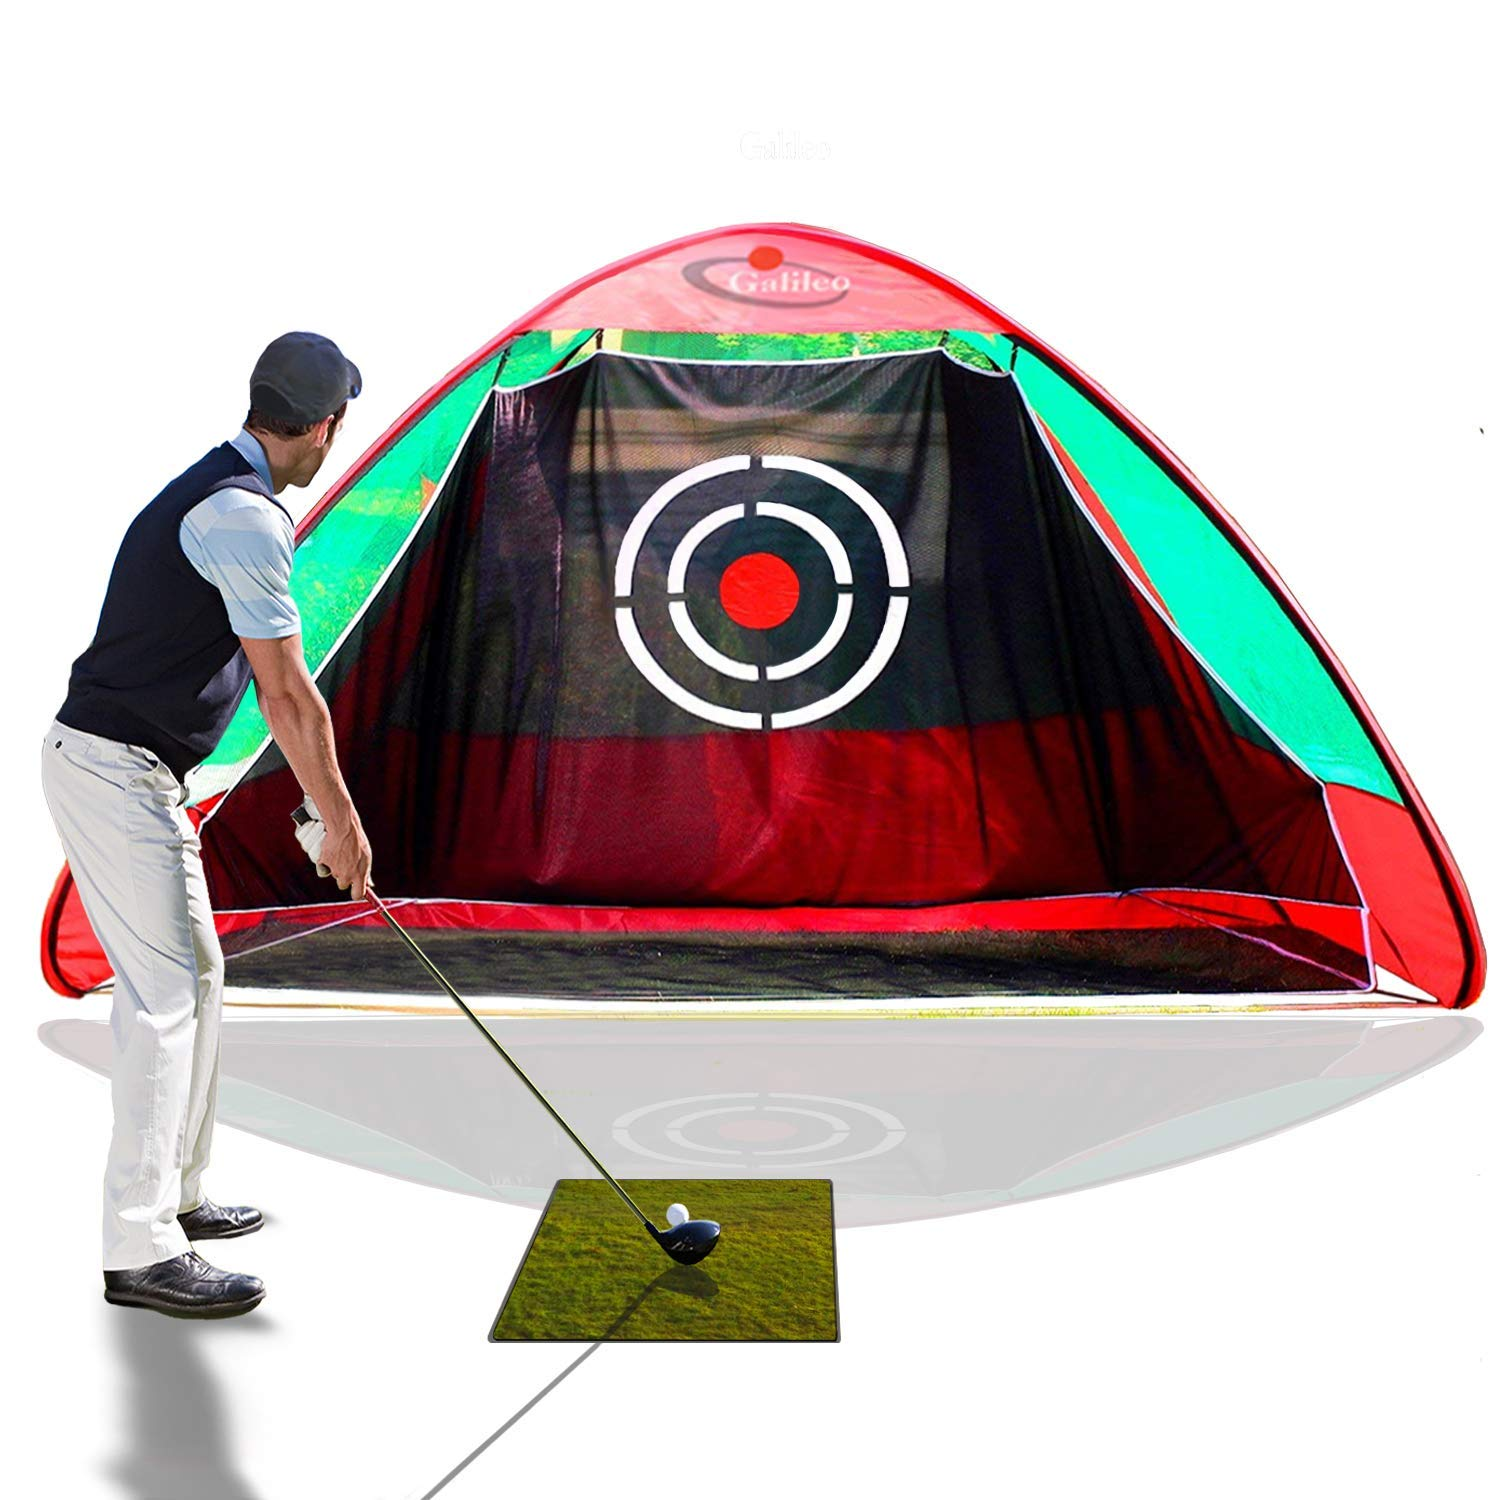 Galileo Driving Golf Net Practice for Driving Hitting [並行輸入品] Golf Training Aids Portable Driving Range Pop Up Automatic Ball Return for Backyard Driving Indoor Outdoor with Target Carry Bag(Green&Black) [並行輸入品] B07R3Y6ZM2, ナチュラルガーデン:edb40c3d --- anime-portal.club